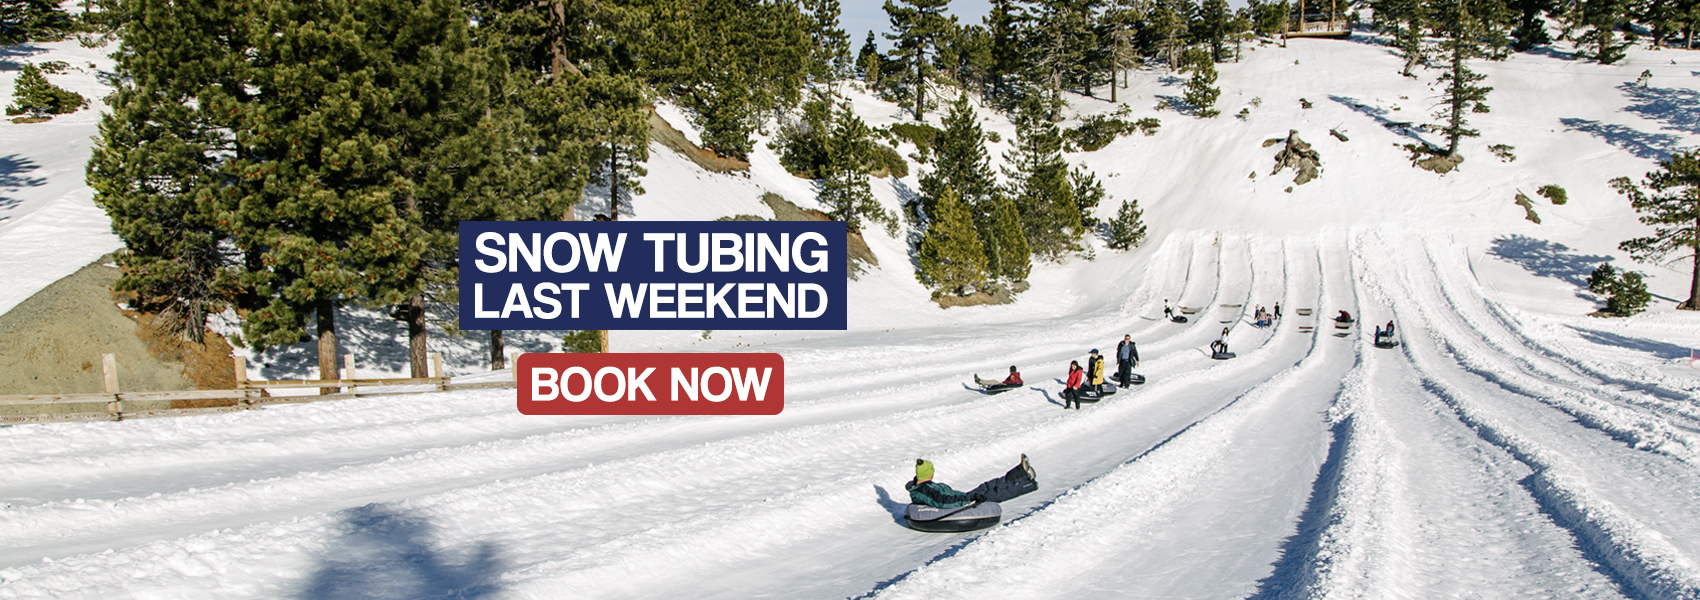 Last weekend to go snow tubing at Mt Baldy Resort